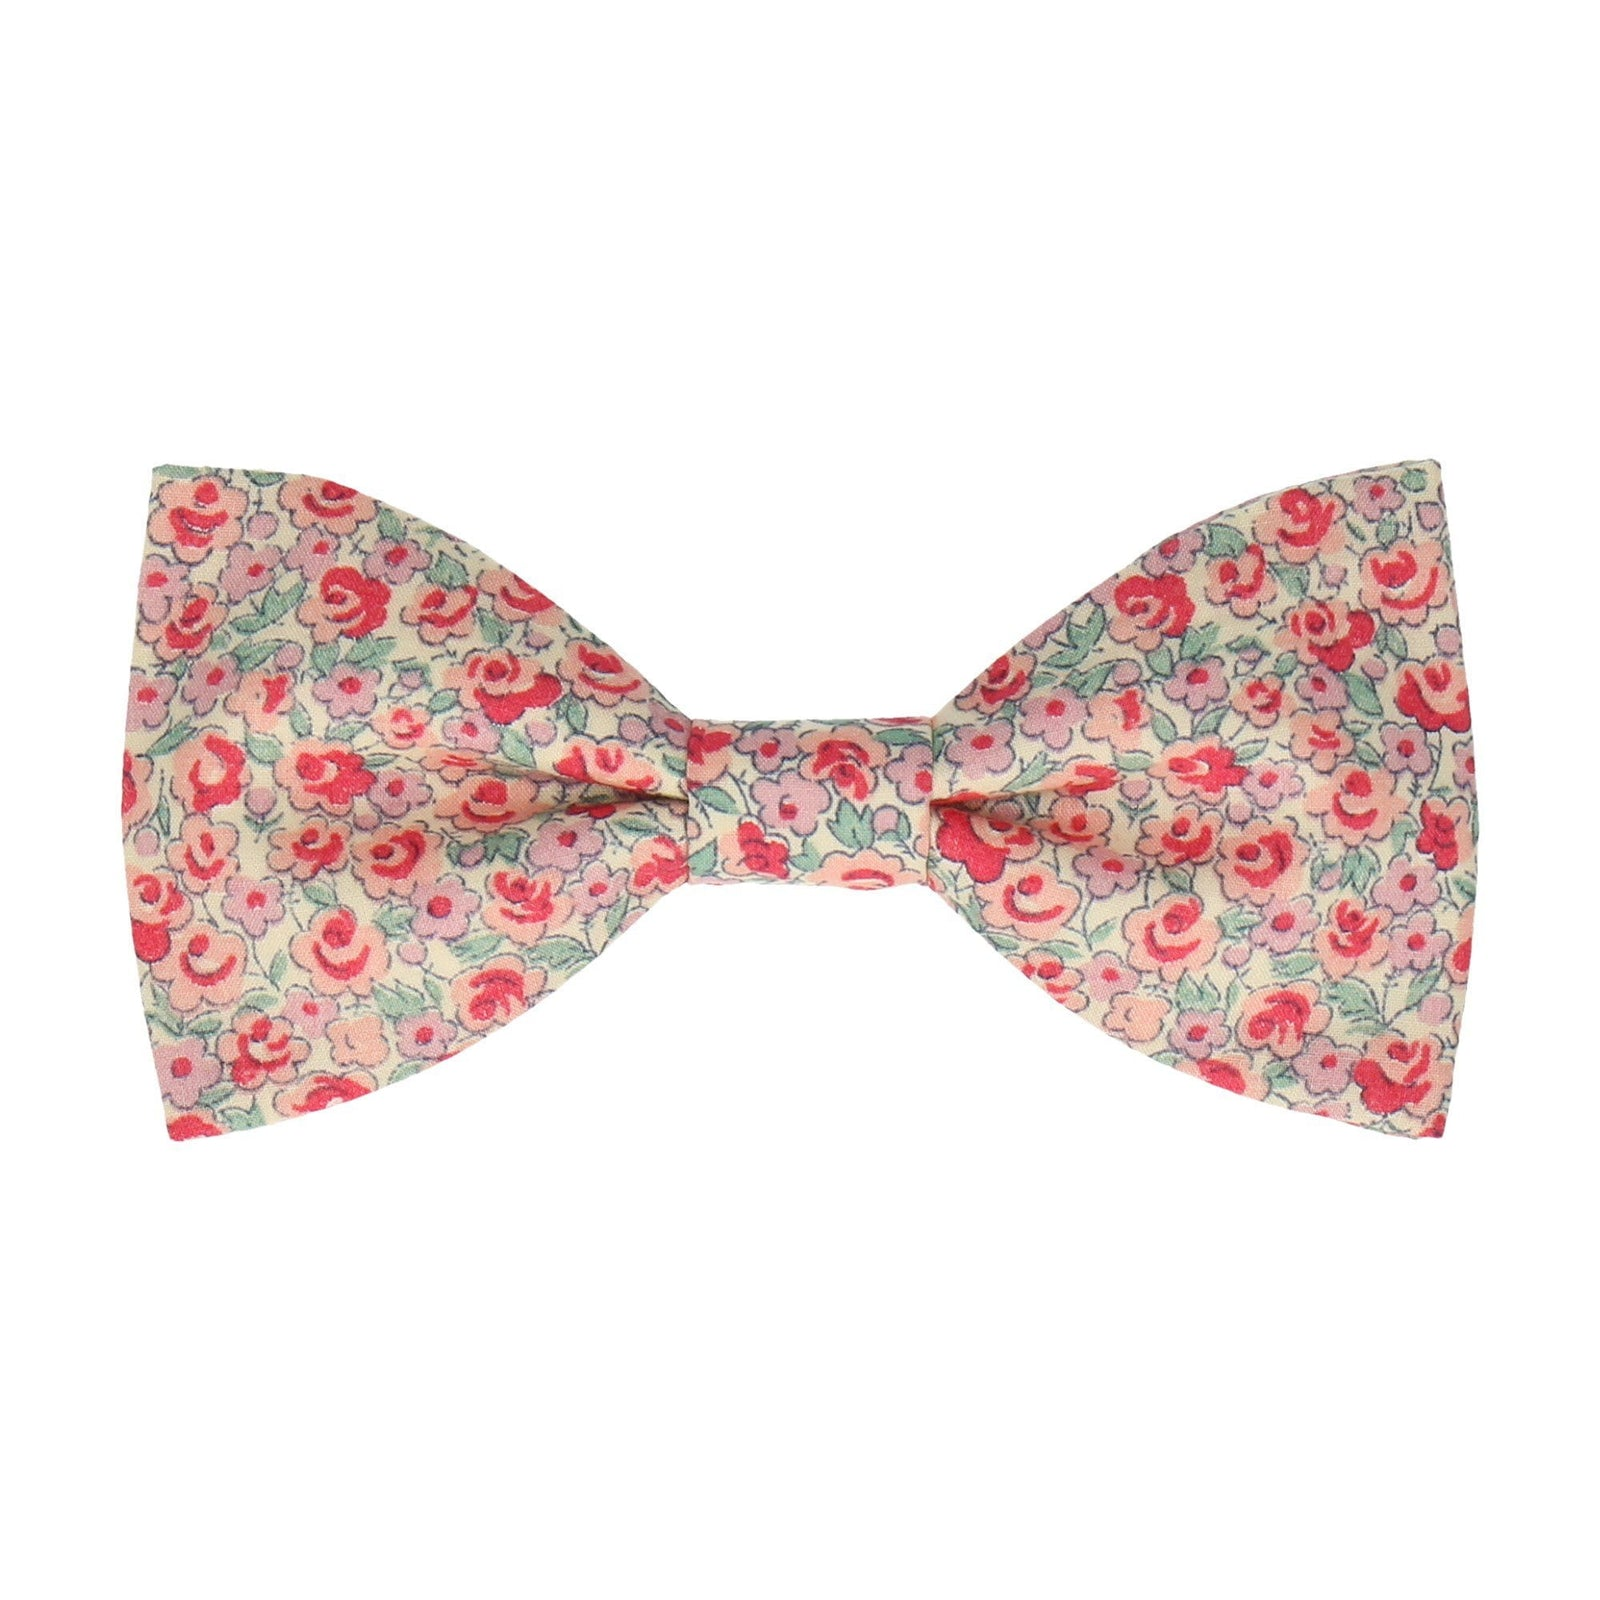 Salmon Pink Floral Bow Tie